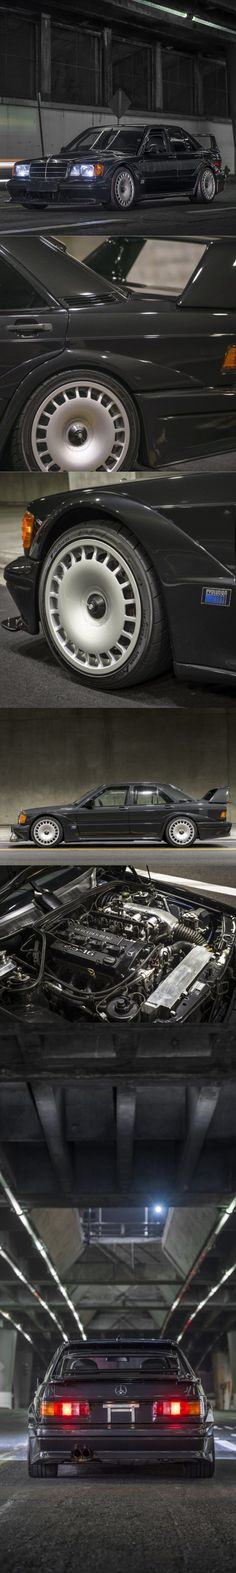 1990 Mercedes-Benz 190E 2.5-16 Evo 2 / 502pcs / 235hp / Germany / black / homologation / Silodrome.com